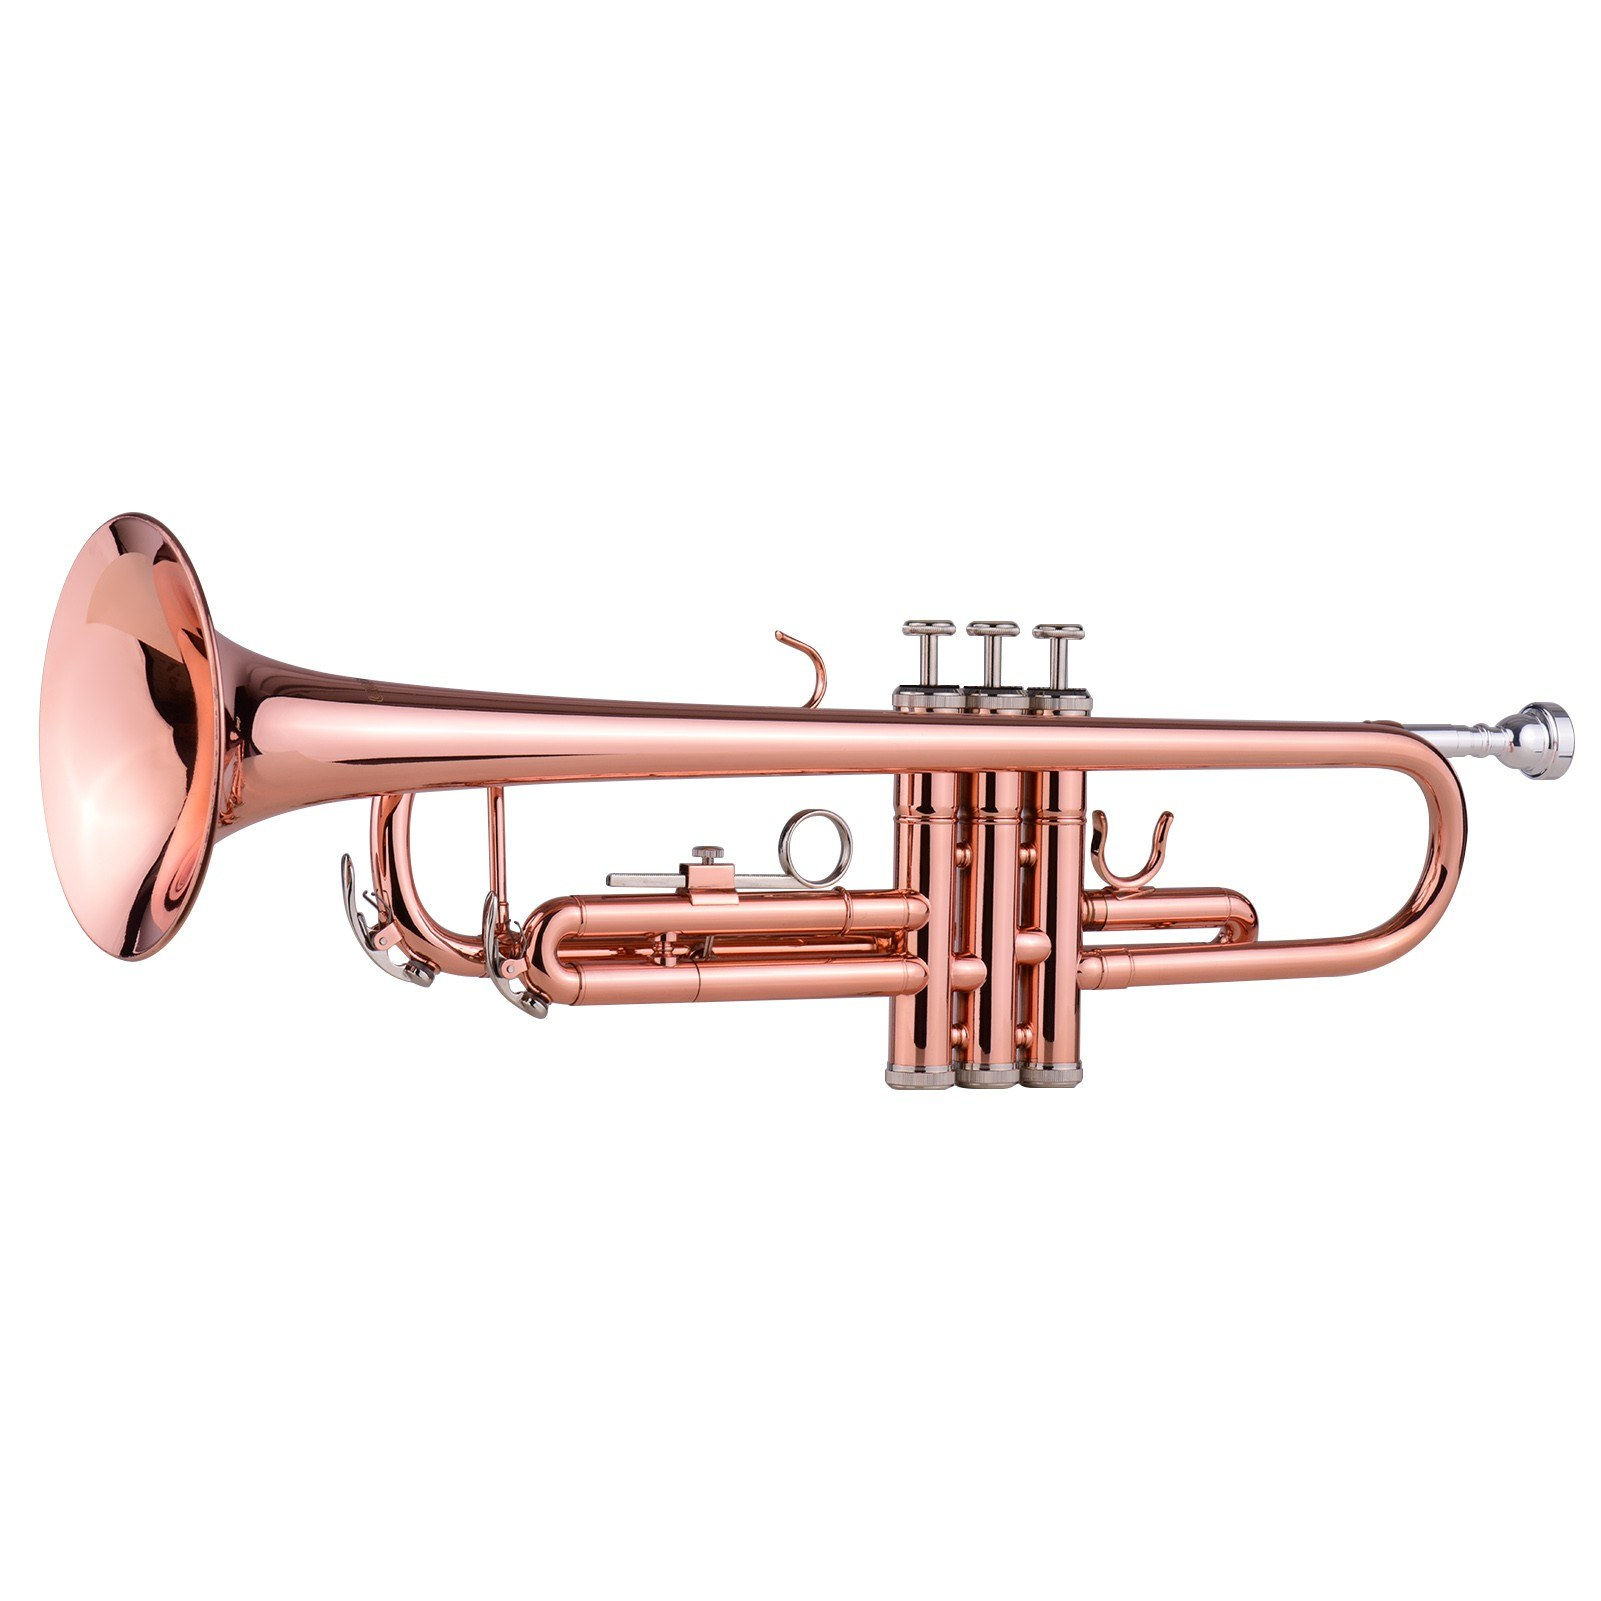 tomtop.com - 59% OFF ammoon TR-180 Standard Bb Brass Trumpet with Hard Case, Cyber Monday $124.99